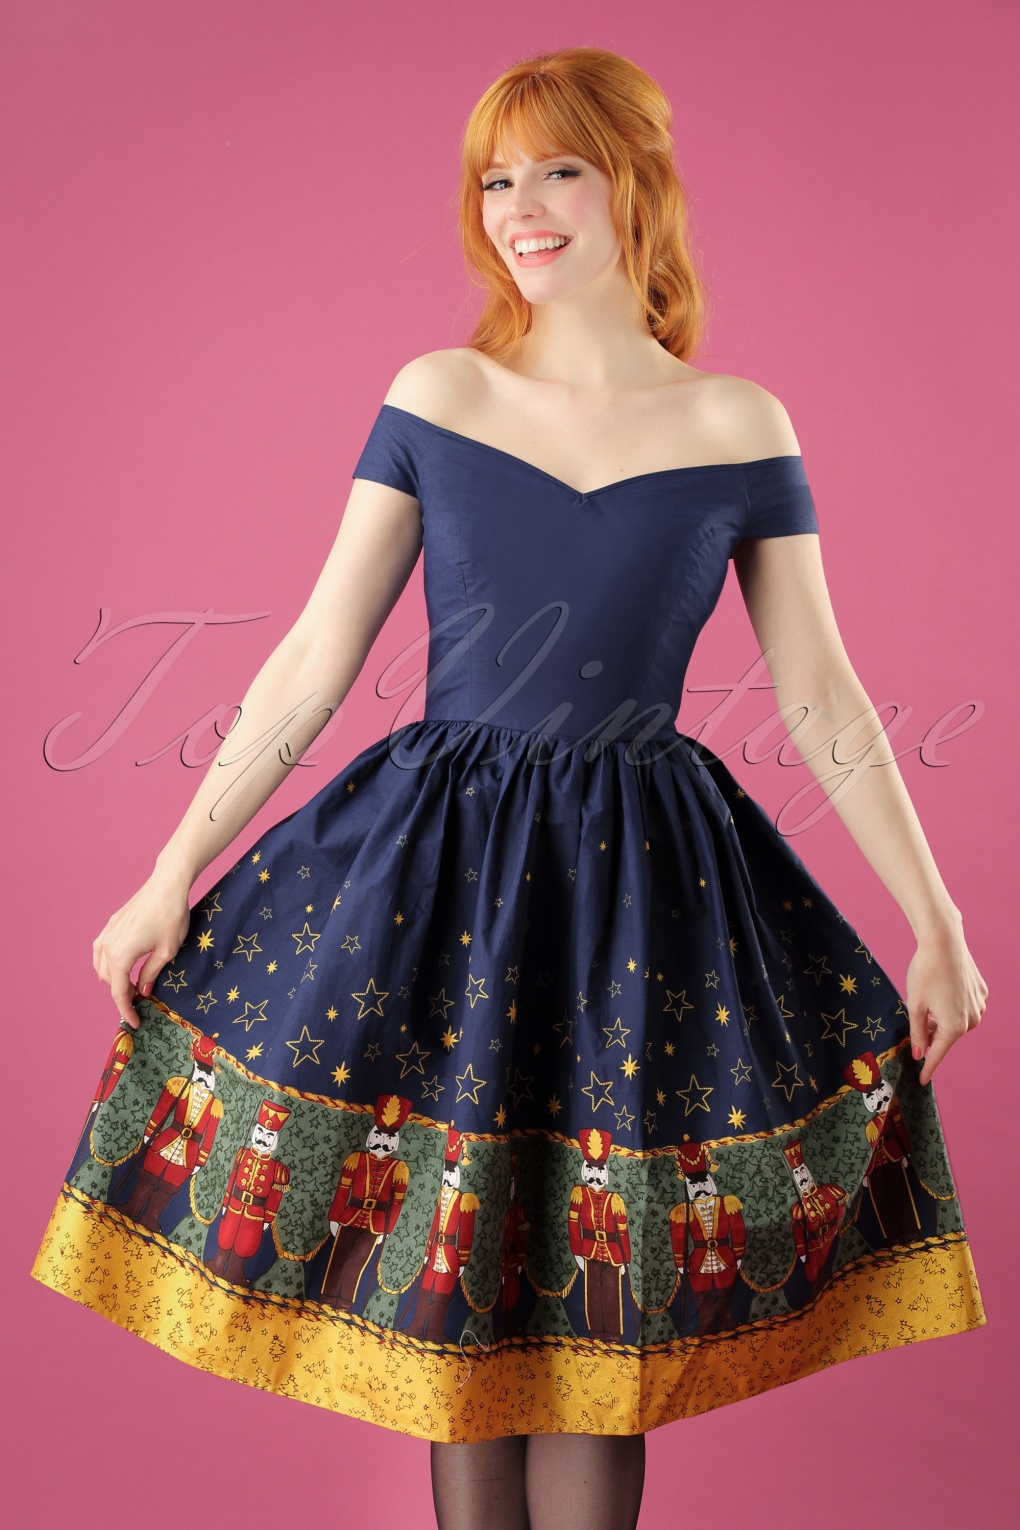 Vintage Christmas Dress | Party Dresses | Night Out Outfits 50s Nutcracker Swing Dress in Navy £56.87 AT vintagedancer.com